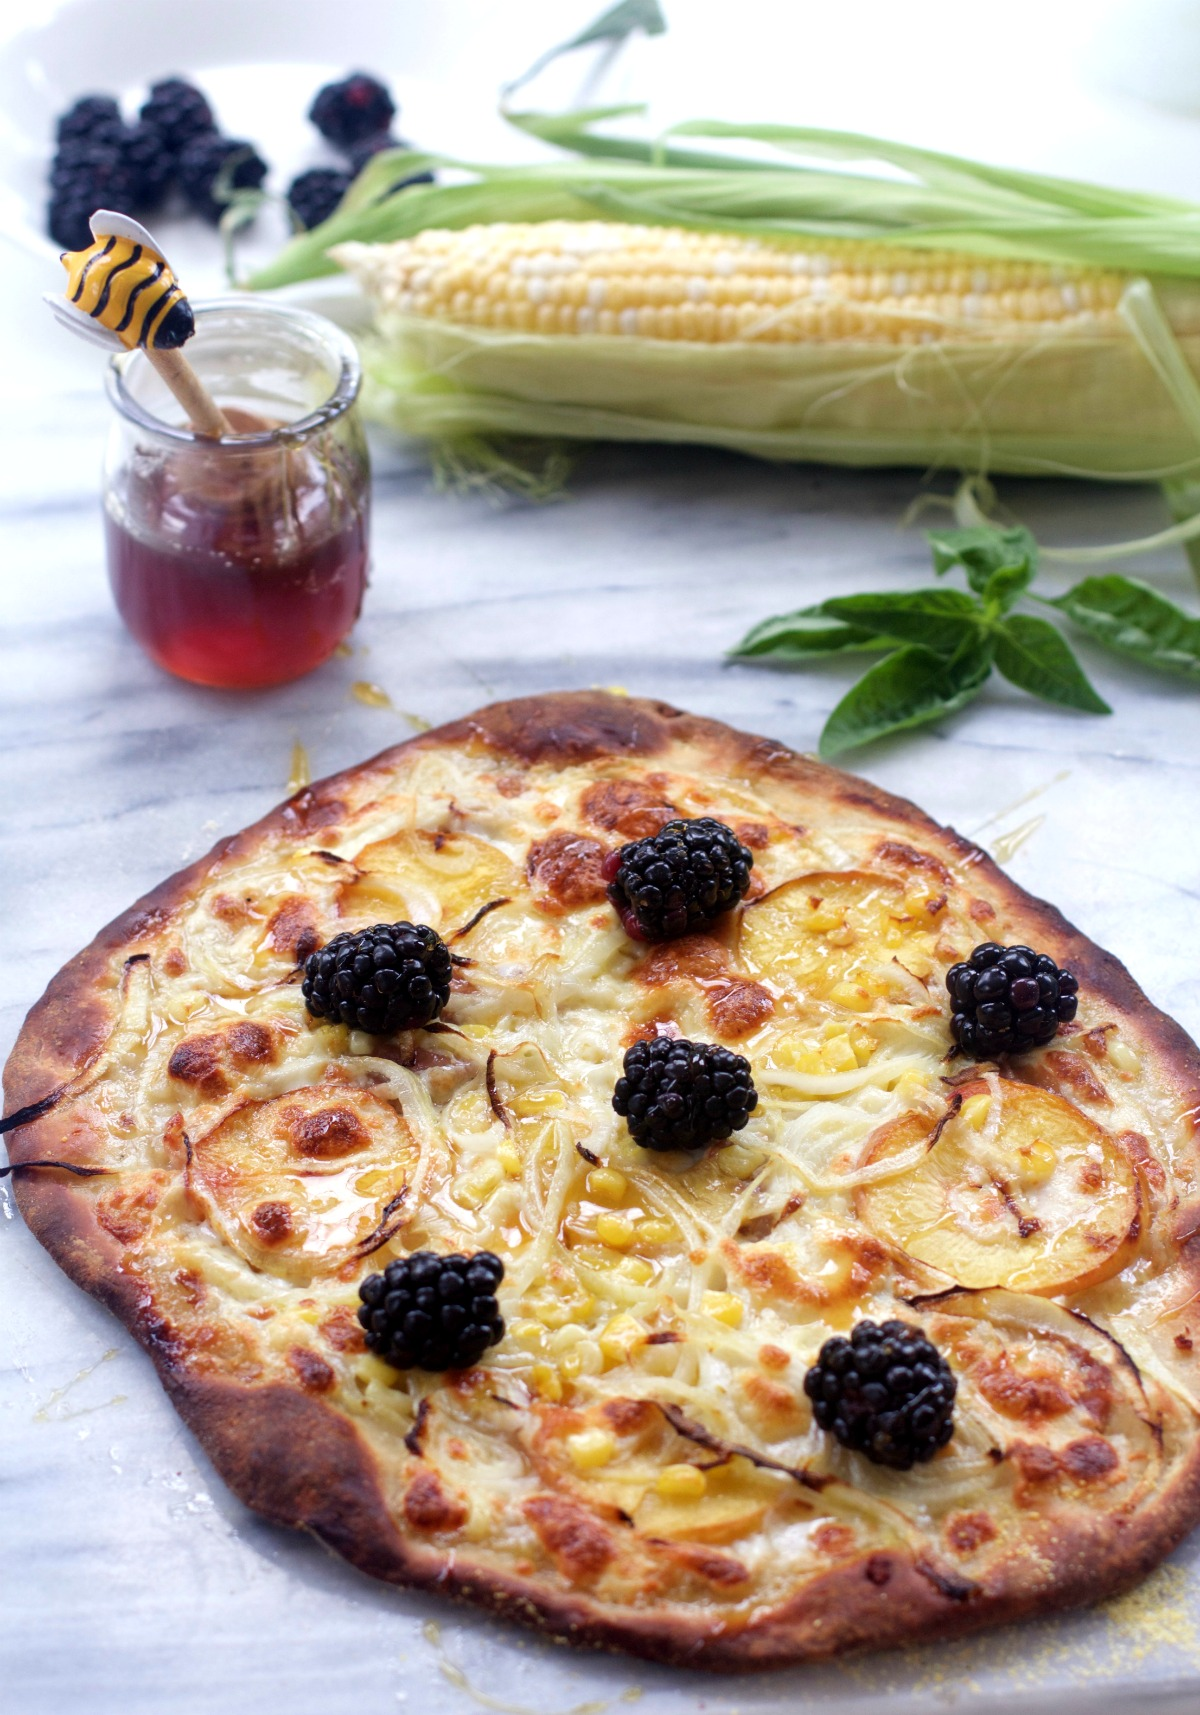 Vidalia Onion Summer Fruit Pizza with Peaches, Fresh Corn, Blackberries by Spinach TIger